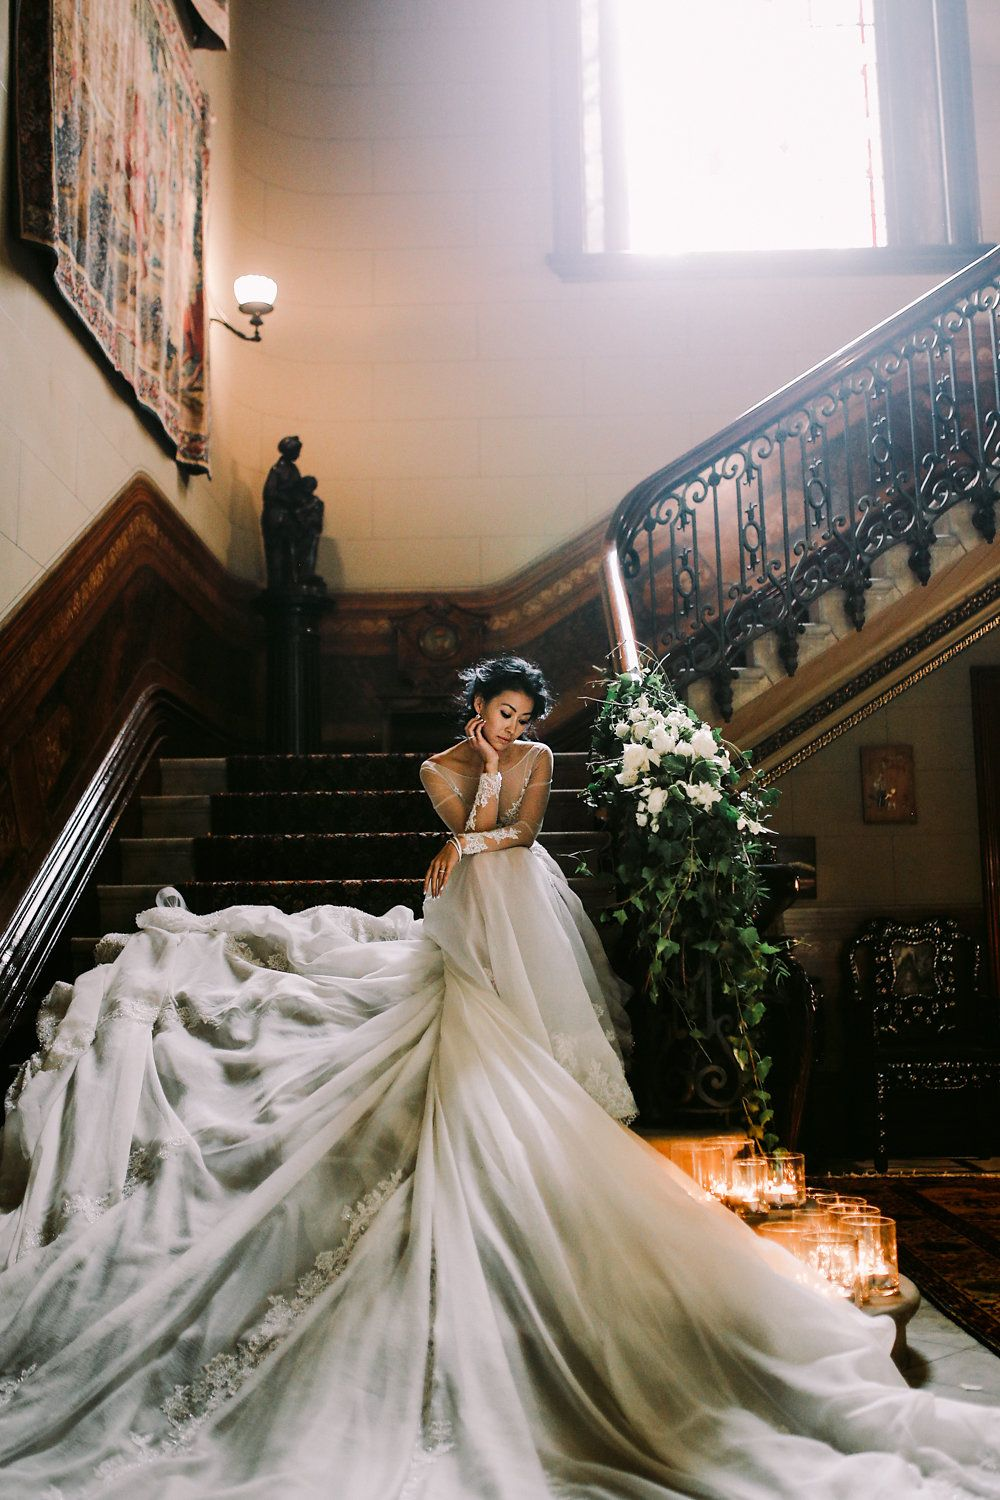 Dramatic Wedding Gown Photo By Lara Hotz Ruffledblog: Morning Garden Wedding Dresses At Websimilar.org